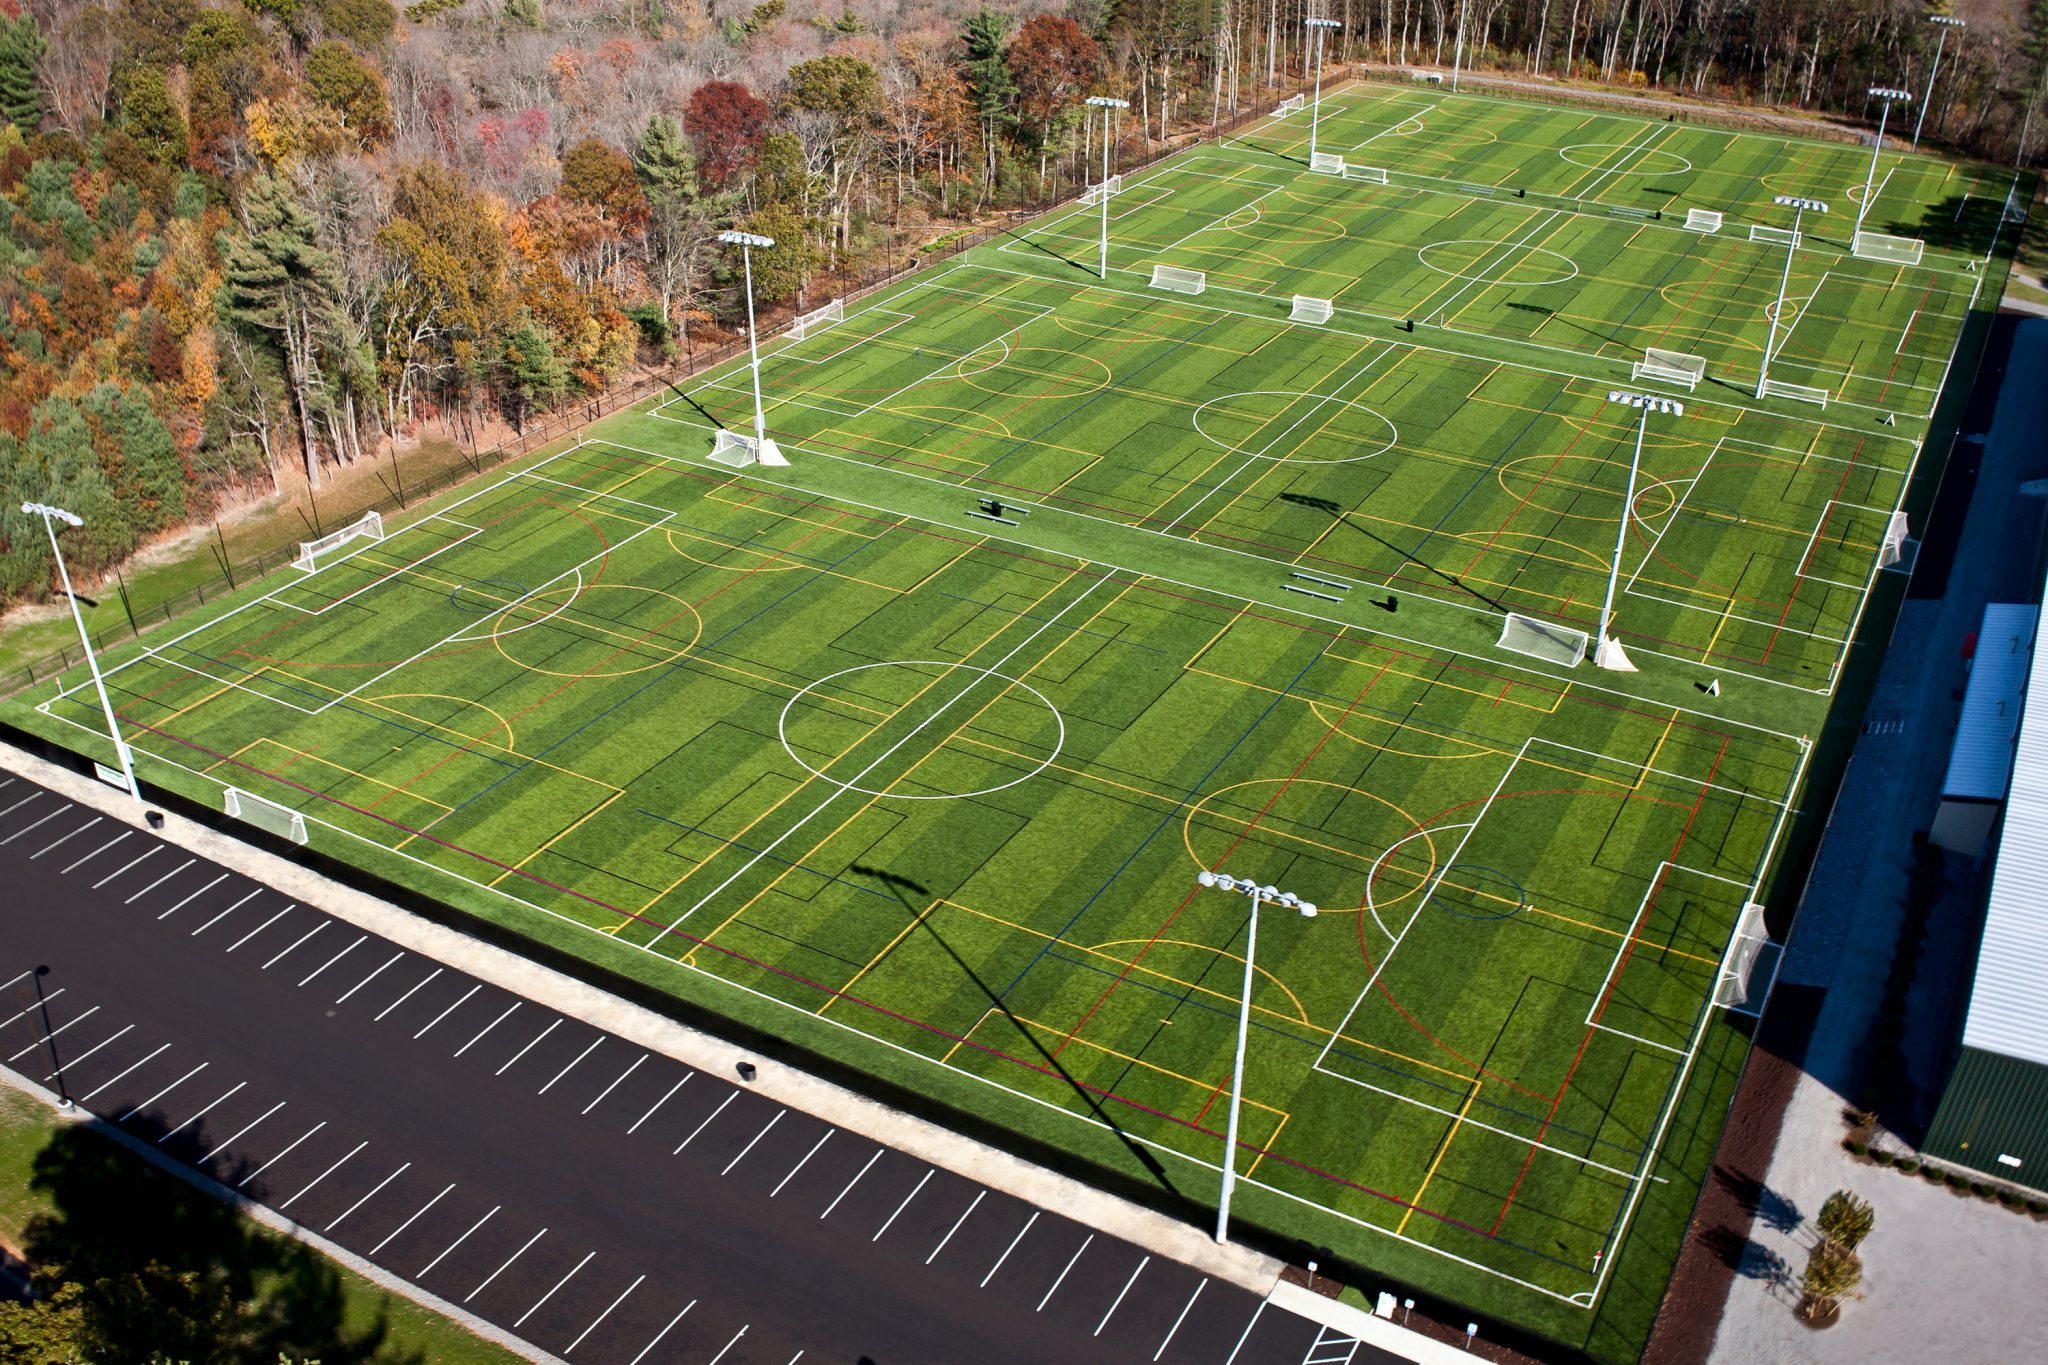 Outdoor turf at Forekicks in Taunton